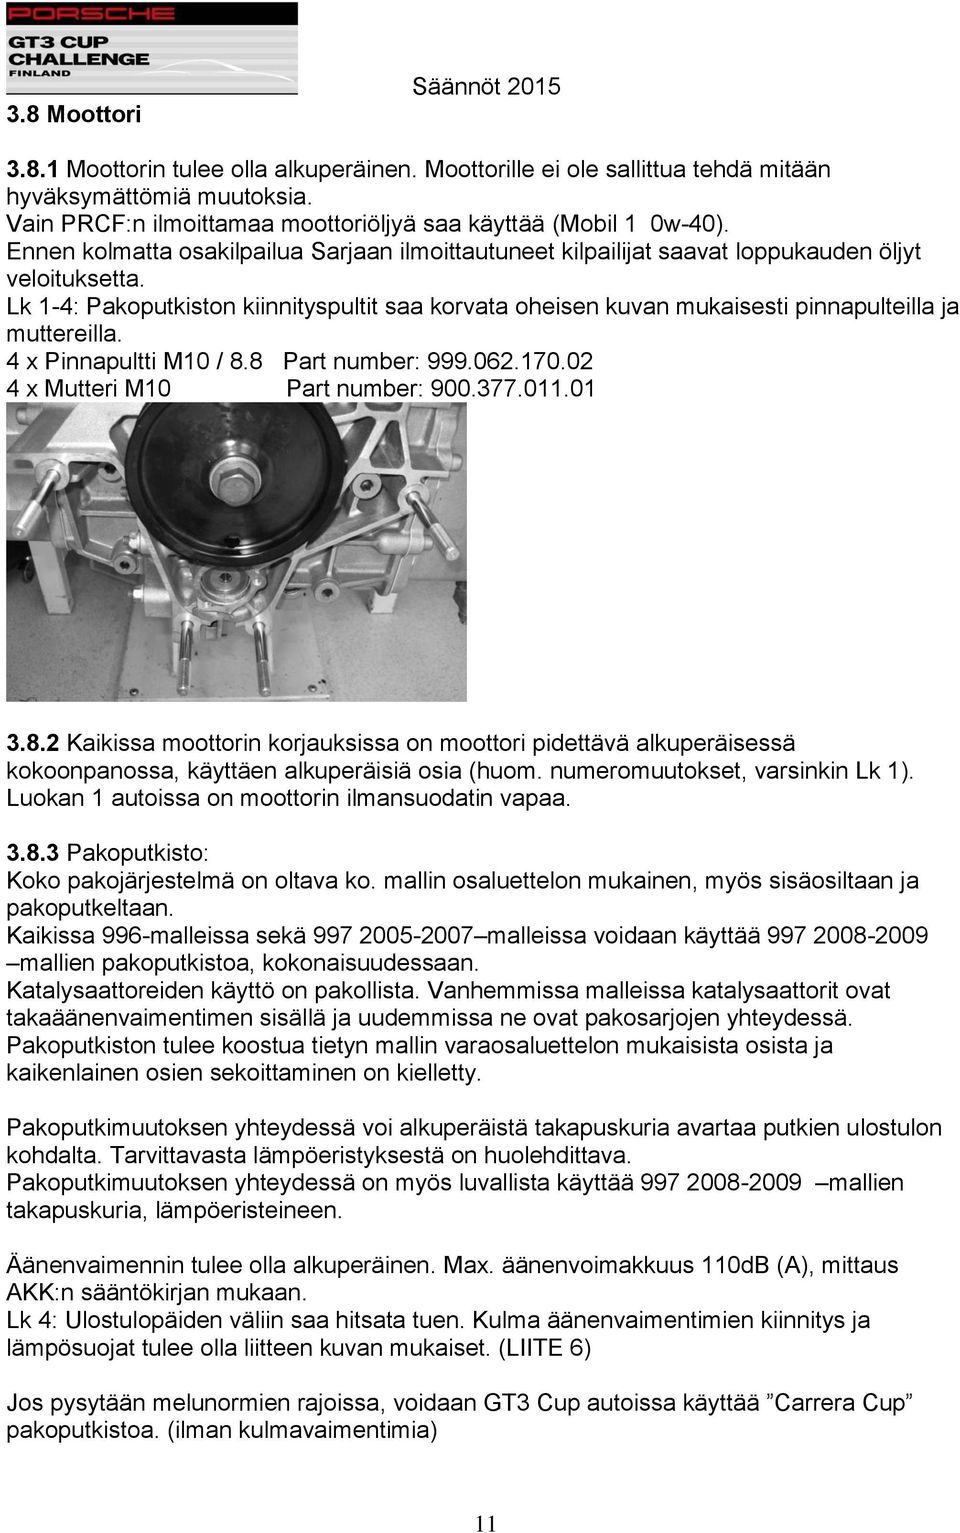 Lk 1-4: Pakoputkiston kiinnityspultit saa korvata oheisen kuvan mukaisesti pinnapulteilla ja muttereilla. 4 x Pinnapultti M10 / 8.8 Part number: 999.062.170.02 4 x Mutteri M10 Part number: 900.377.